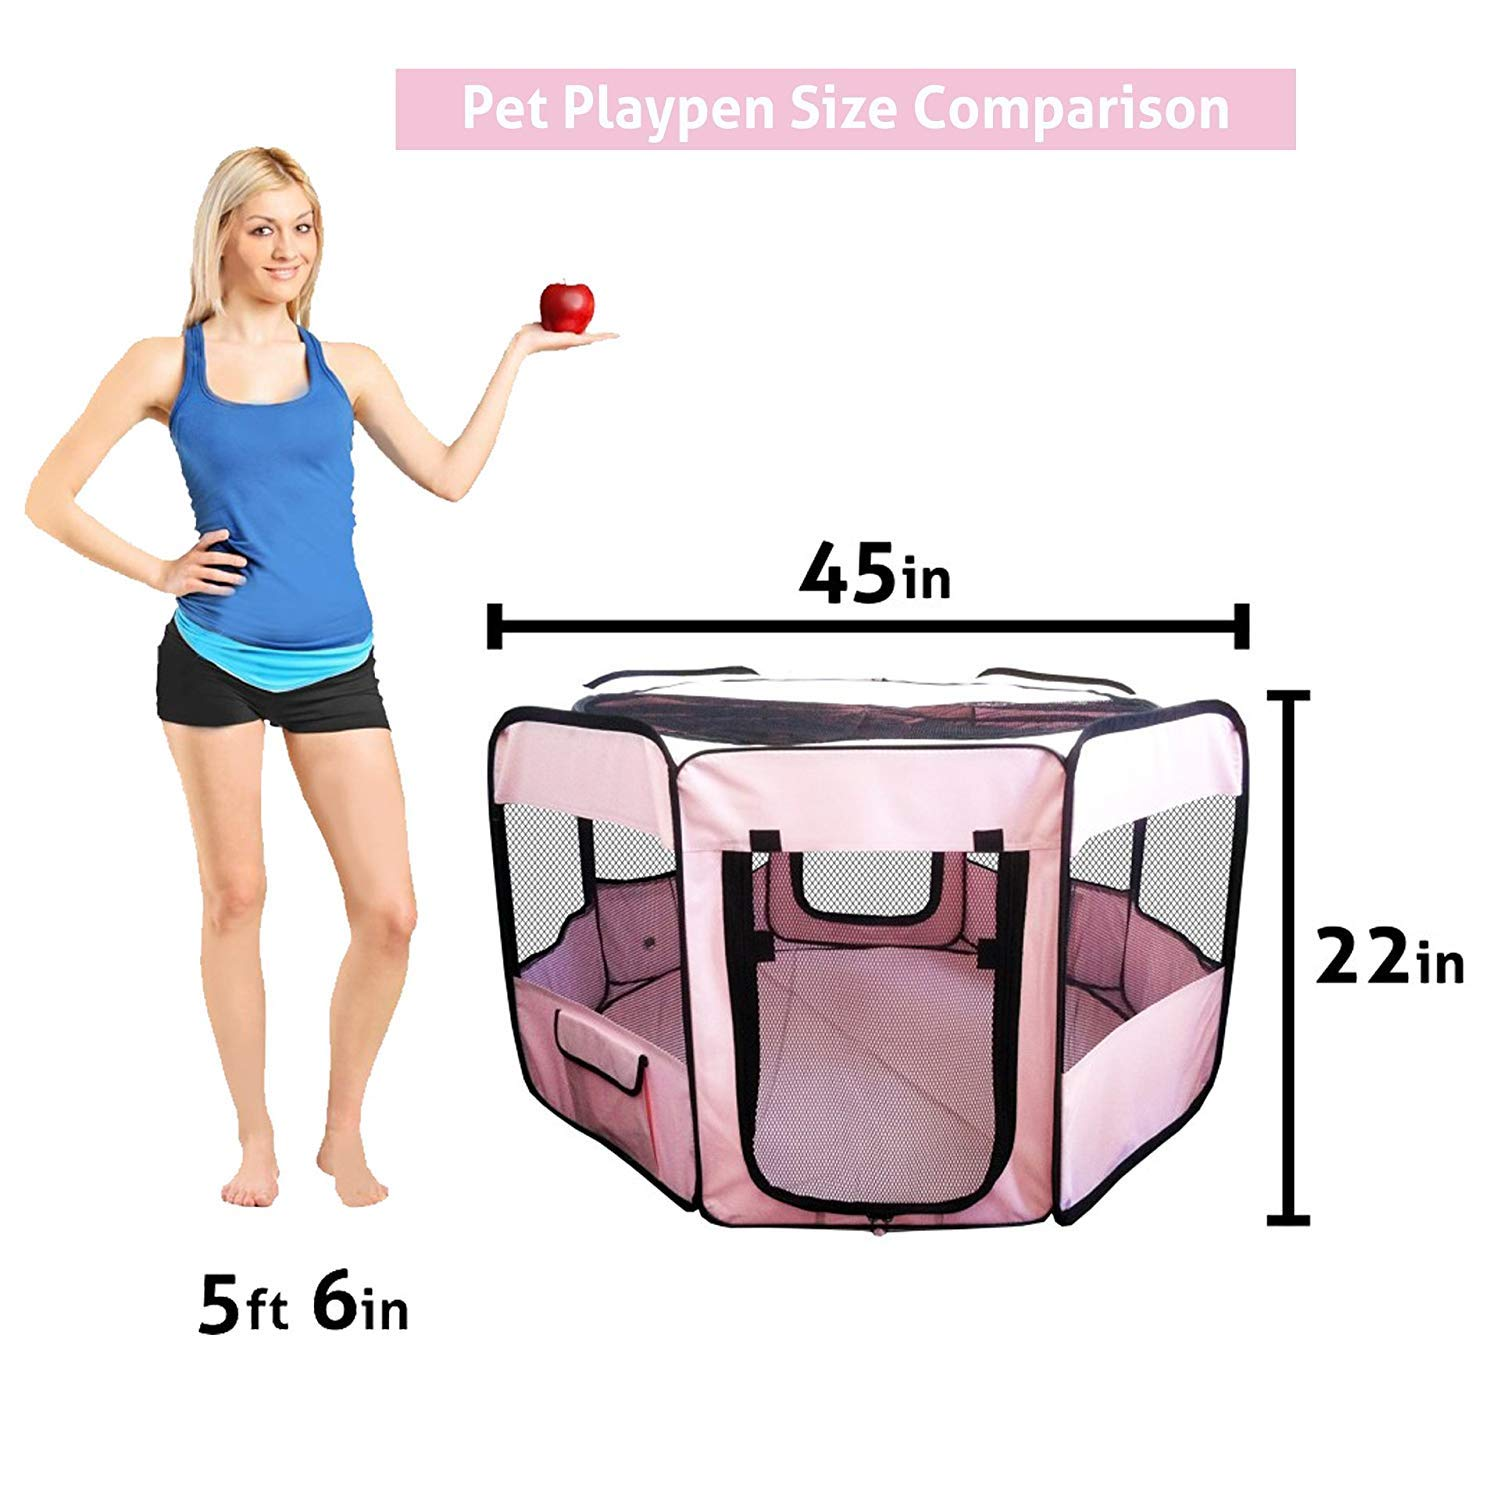 """ToysOpoly #1 Premium Pet Playpen – Large 45"""" Indoor/Outdoor Cage. Best Exercise Kennel for Your Dog, Cat, Rabbit, Puppy, Hamster or Guinea Pig. Portable Fabric Pen for Easy Travel (Light Pink) by ToysOpoly (Image #4)"""